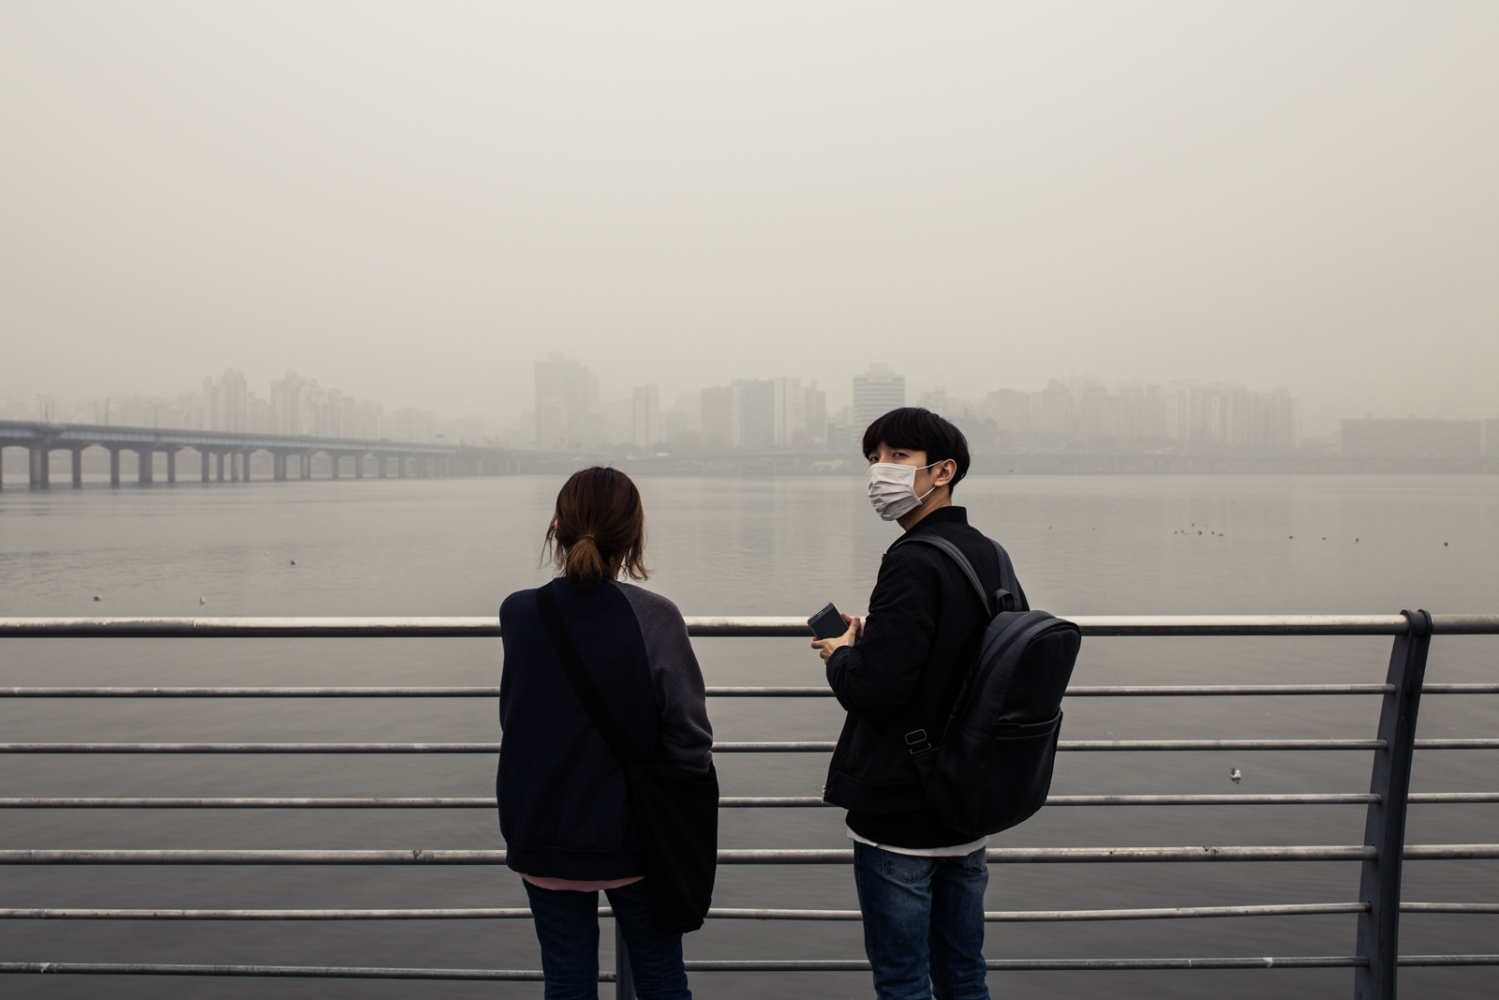 A couple in Seoul, South Korea under a thick blanket of air pollution that covered the city during a spring day. Air pollutants are mostly sourced from fossil fuel burning vehicles and power plants. As air pollutants are released from the burning of fossil fuels, it is realesed in concert with carbon dioxide, the main precusor to climate change.